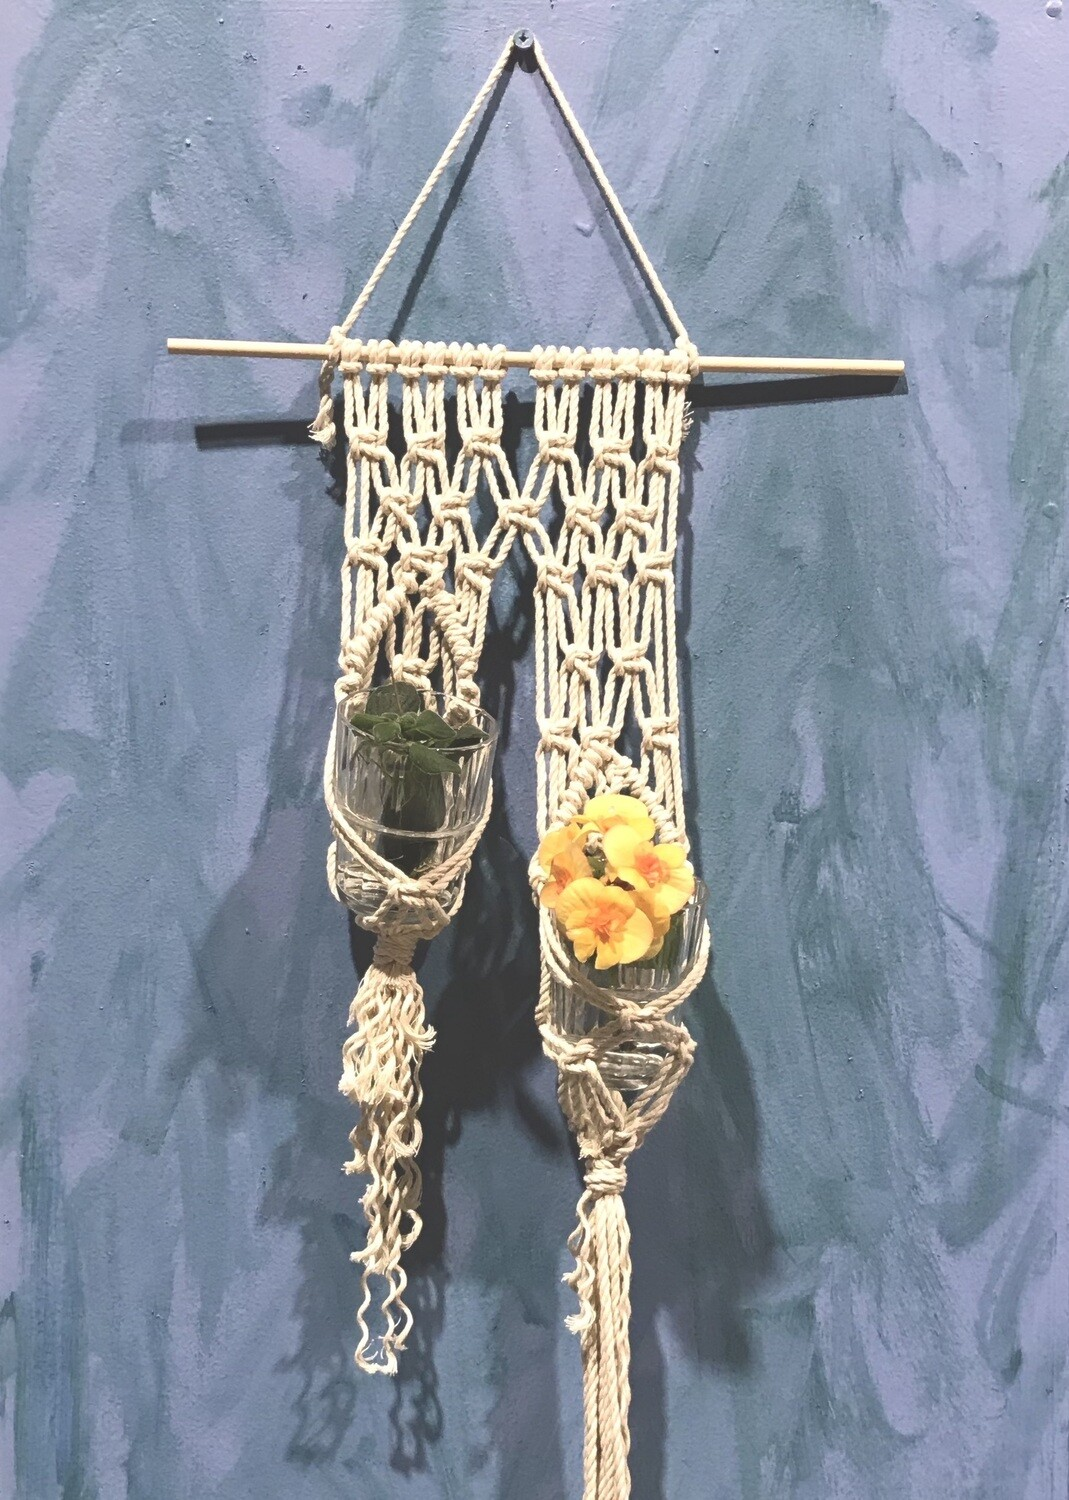 Macrame plant wall hanger workshop - Tuesday 7 July, 10am-12pm